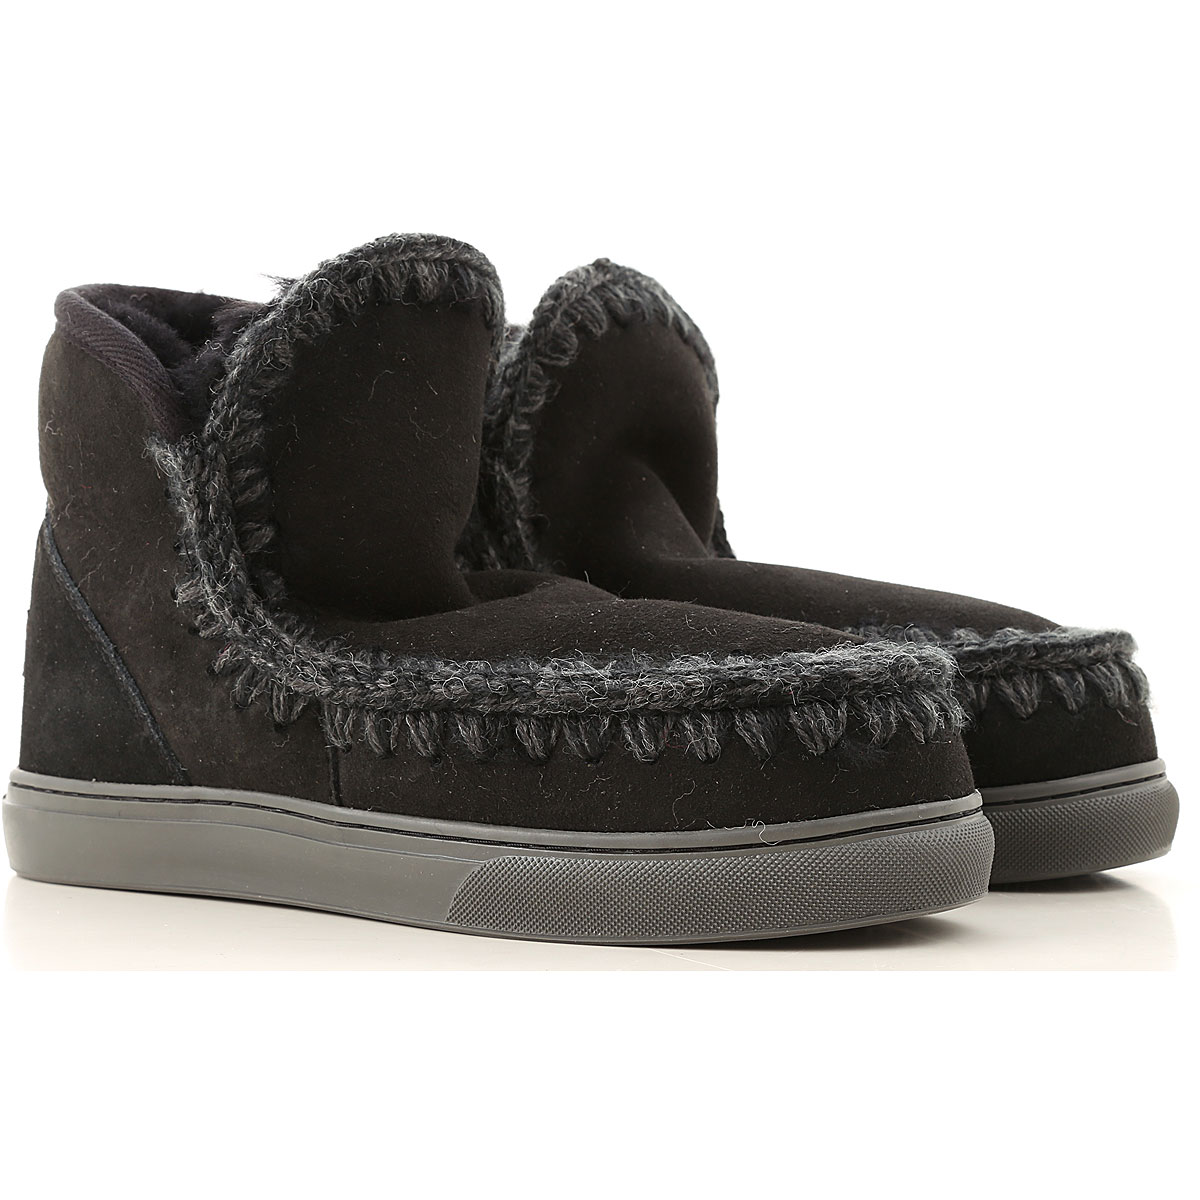 Mou Boots for Women, Booties On Sale, Black, Suede leather, 2019, EUR 36 - UK 3 - USA 5.5 EUR 37 - UK 4 - USA 6.5